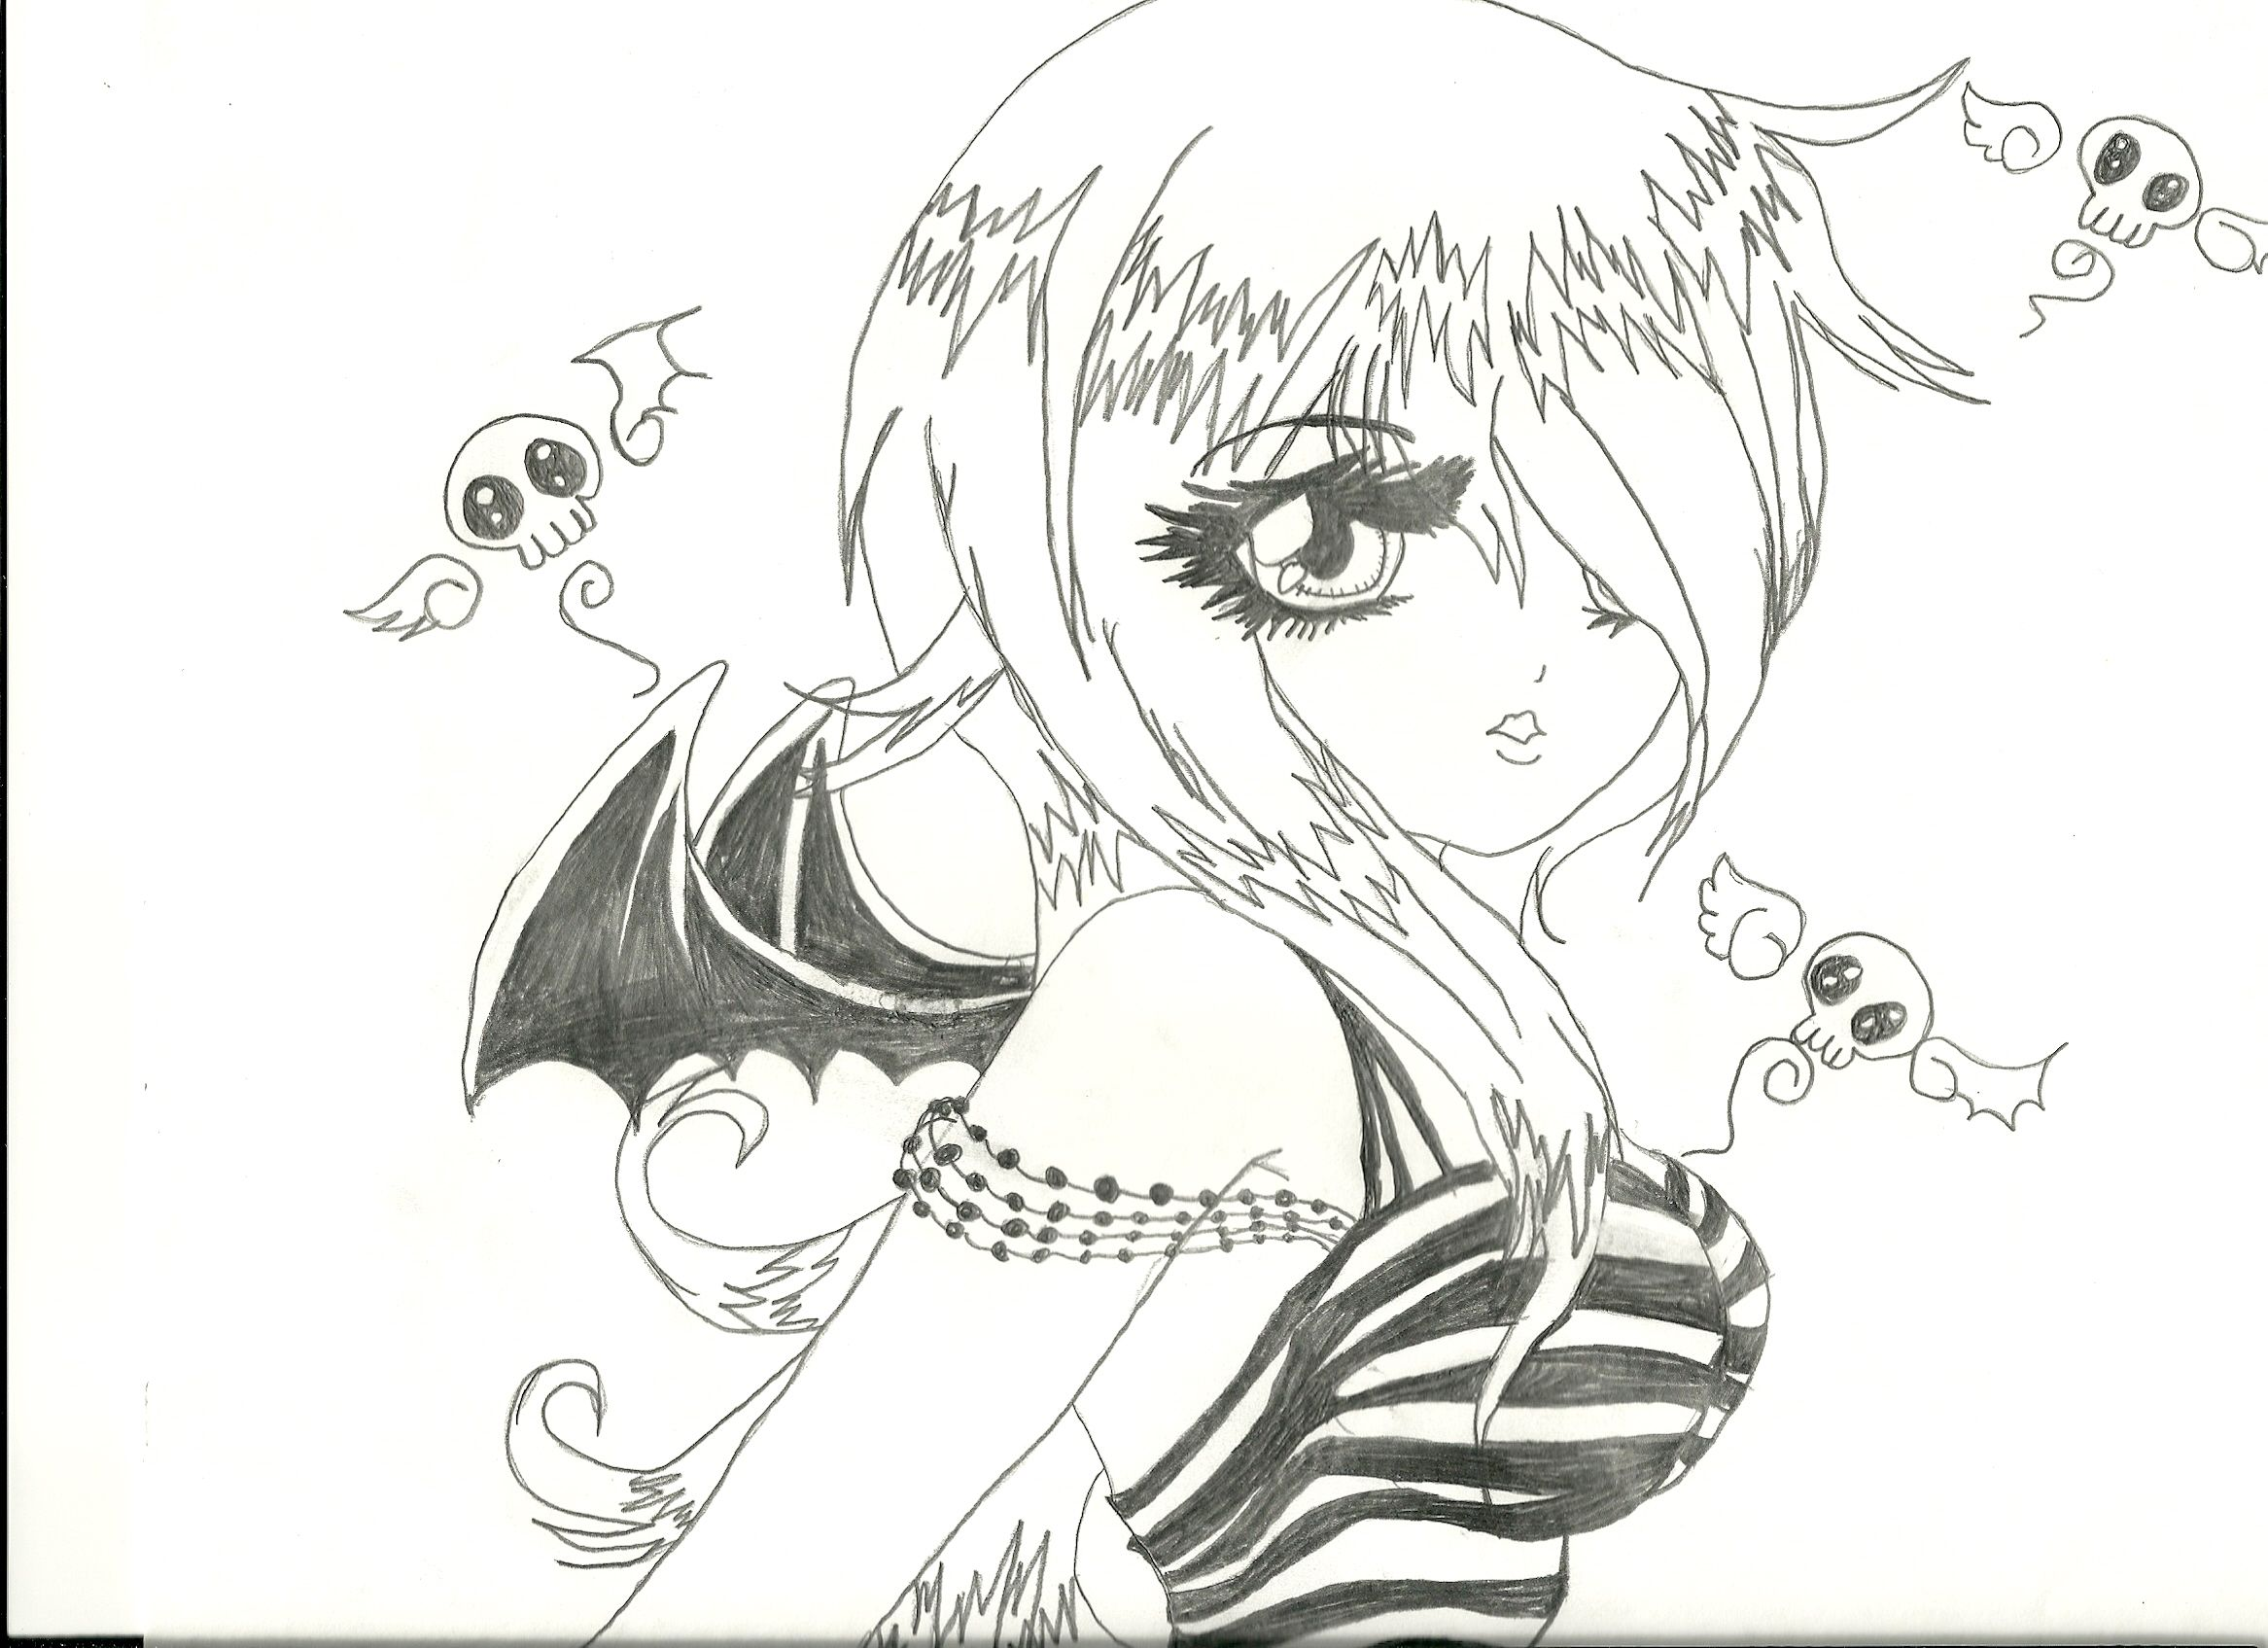 Anime Demon Girl 1 000000030380 1 Jpg 2333 1695 Anime Anime Drawing Styles Chibi Coloring Pages